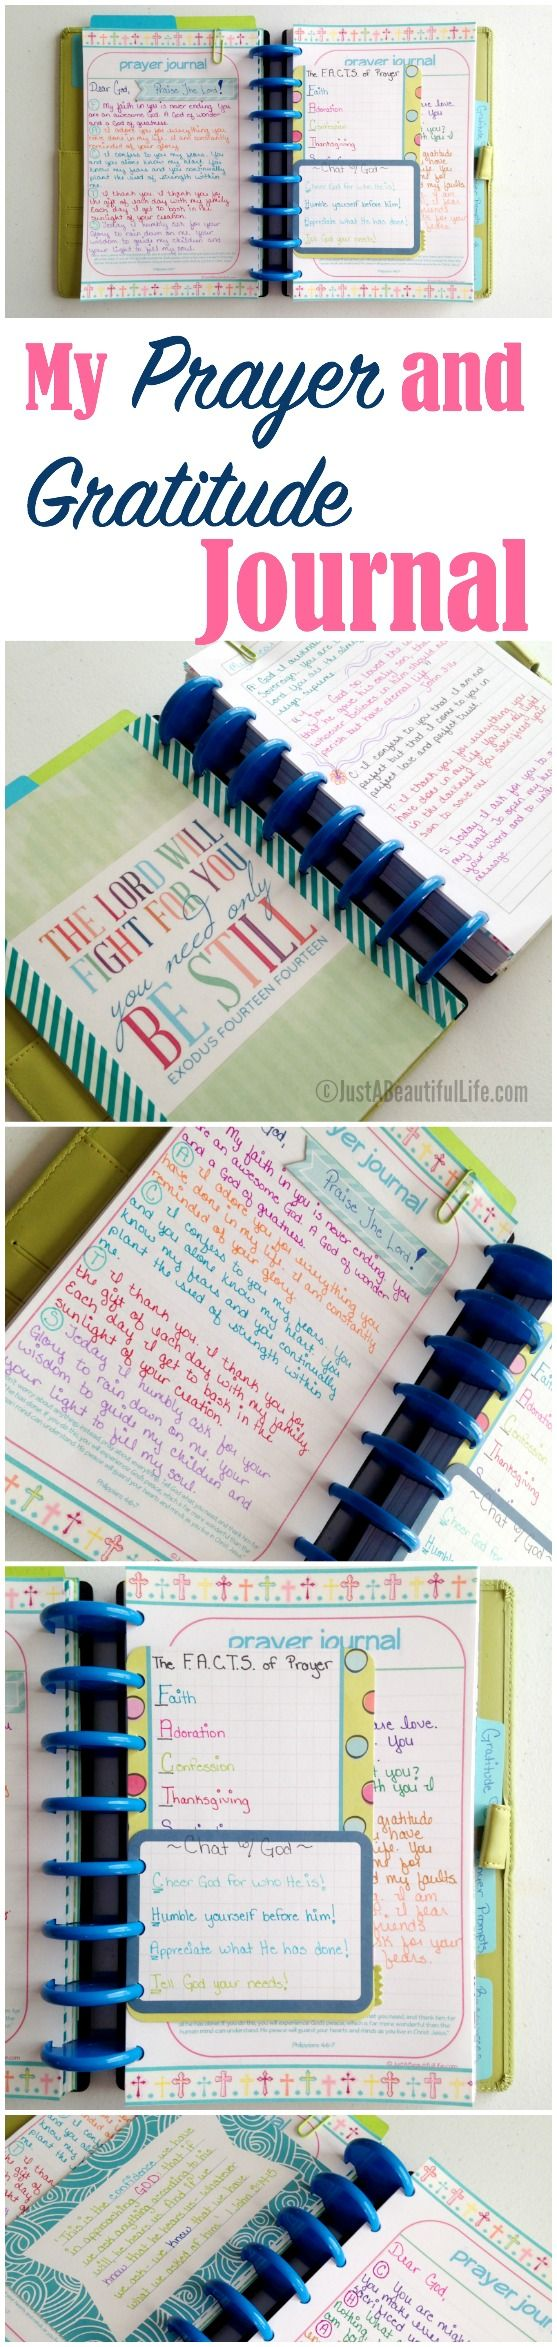 A simple set up prayer and gratitude journal.